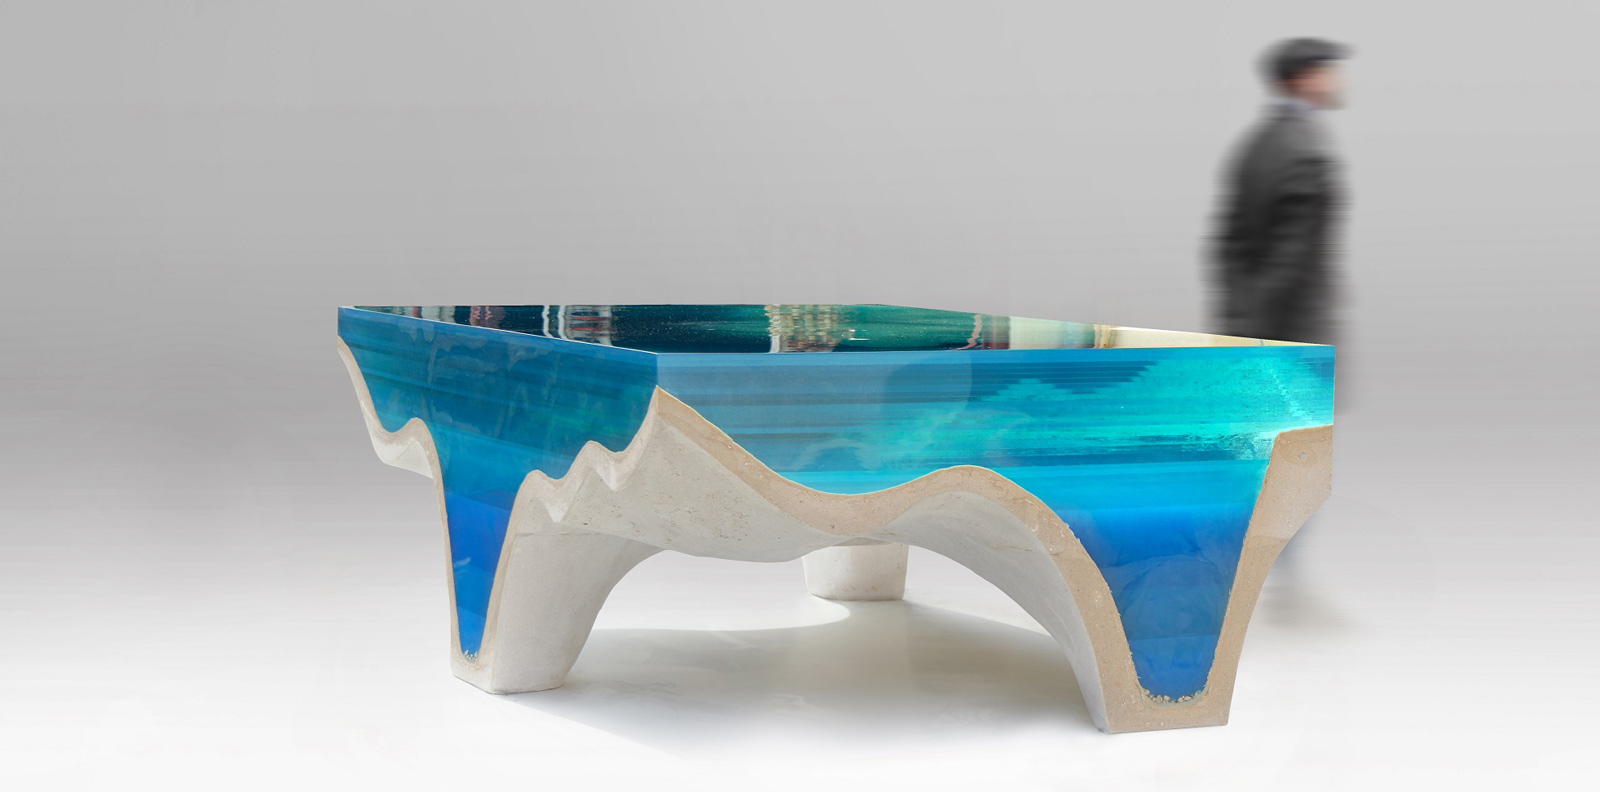 Artist Eduard Locota Make Hyper Realistic Tables Of Islands And The Underwater Topography Their Coasts Using Different Colours Epoxy Glass Over A Base